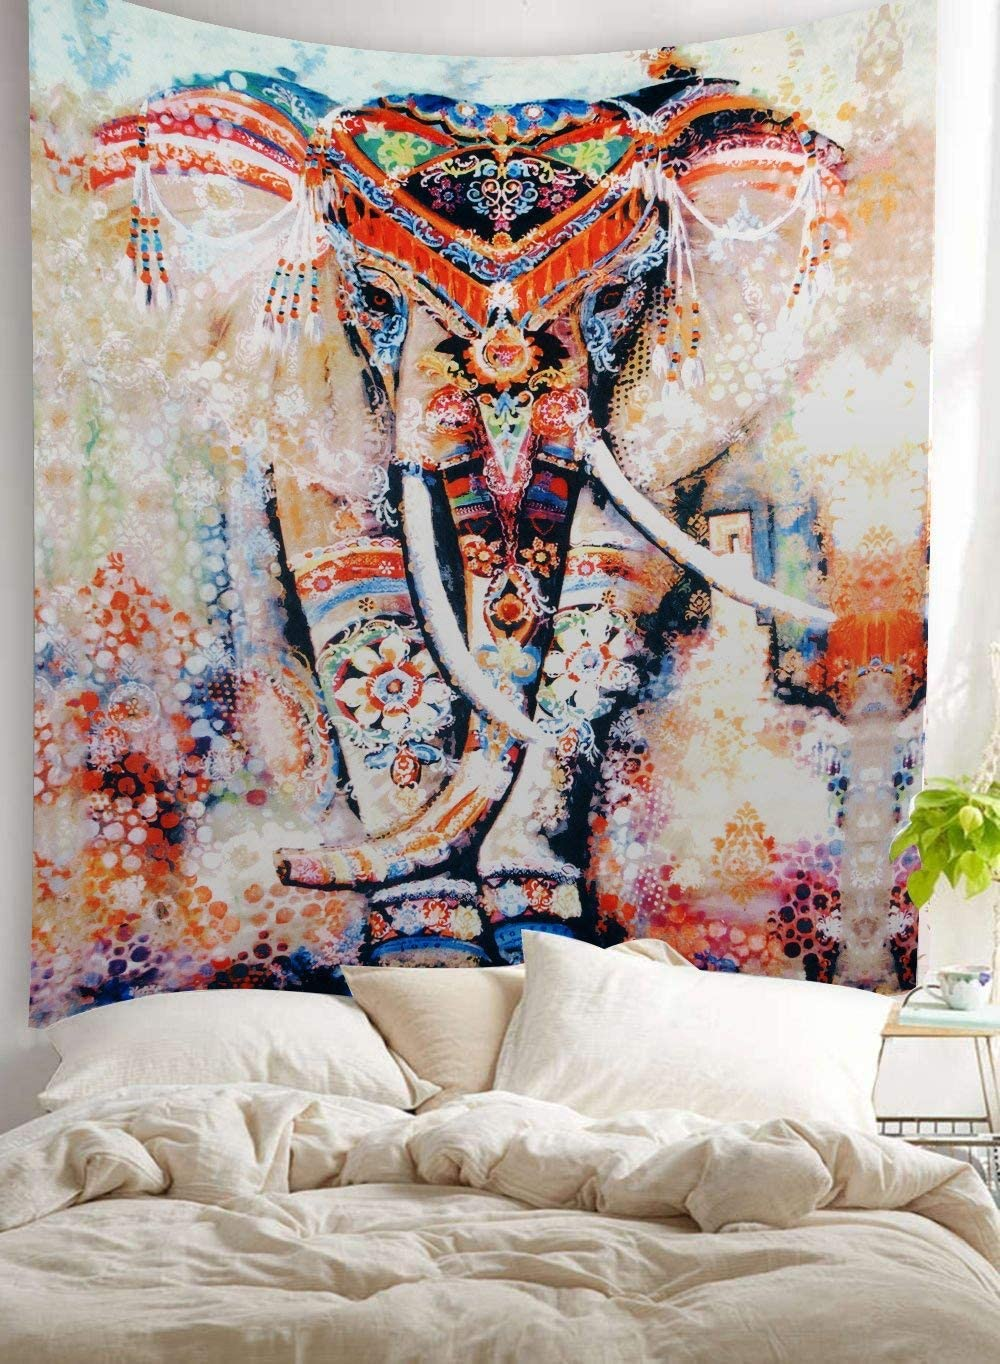 Amazon Com Bohemian Room Decor Hippie Boho Chic Style Gypsy Gifts Elephant Wall Hanging Tapestry Decor Furniture Decor